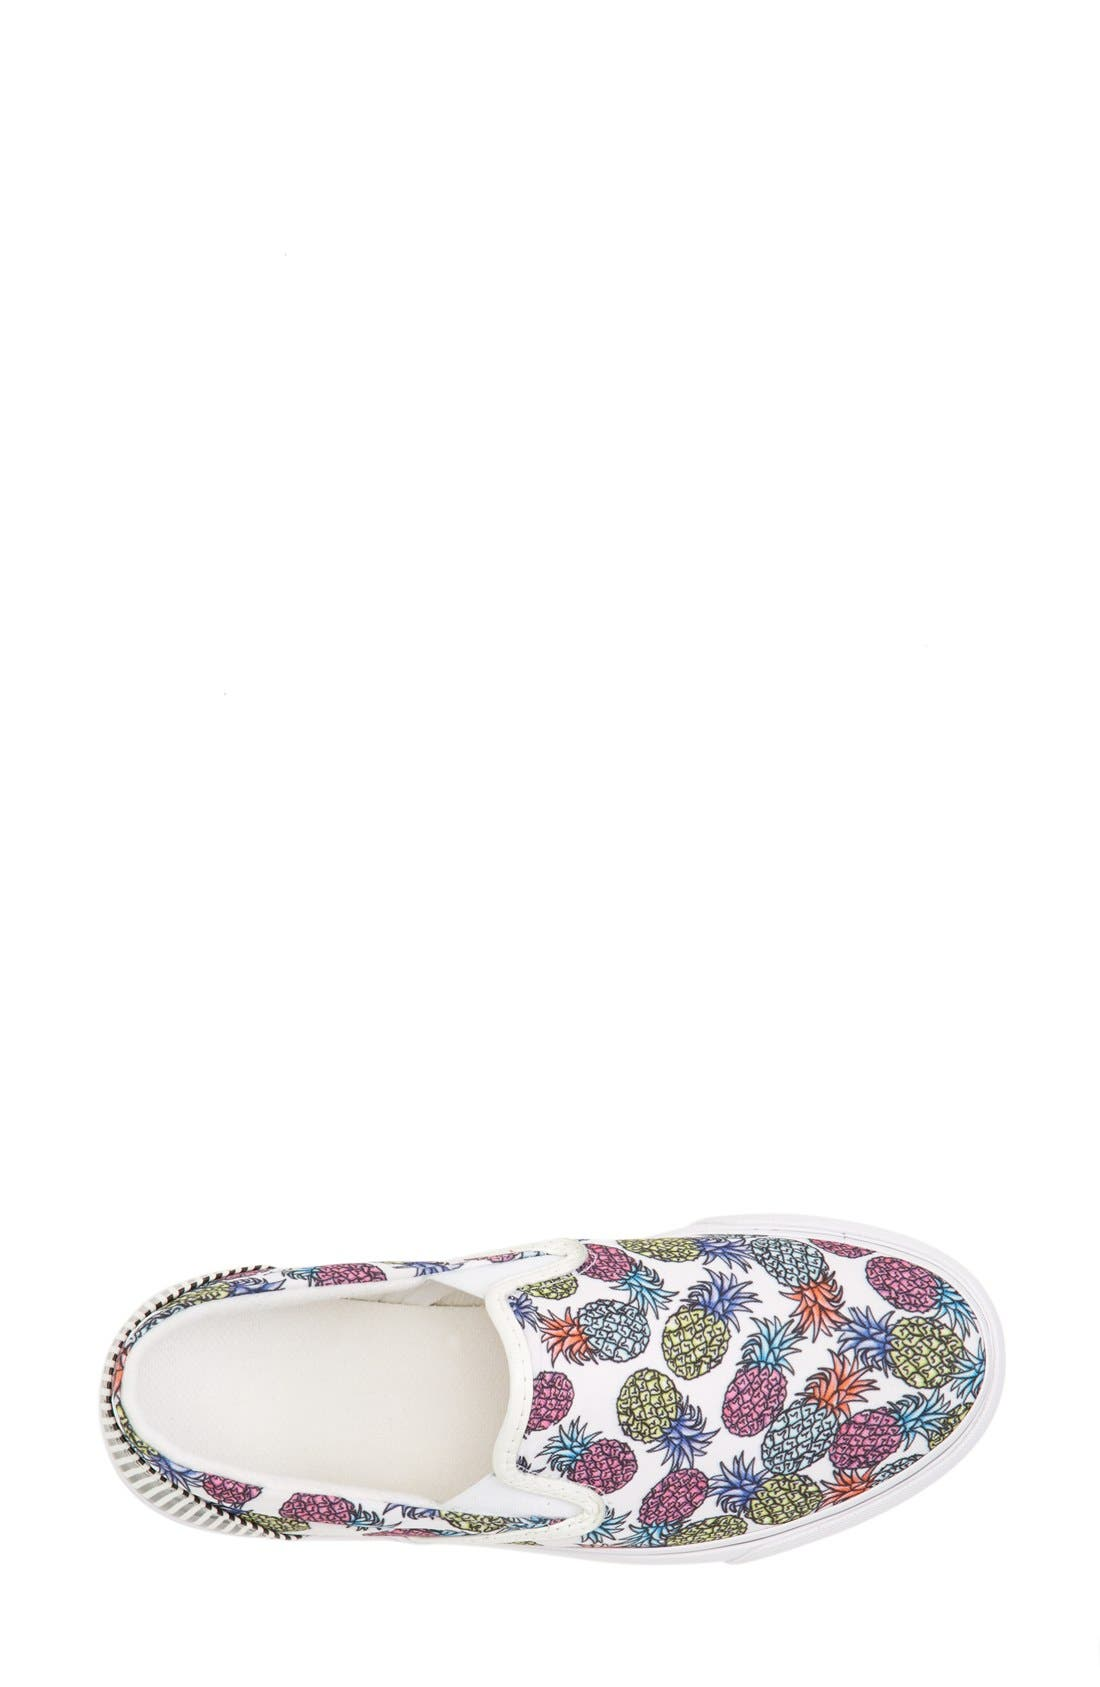 'Adele - Pineapple' Satin Slip-On Sneaker,                             Alternate thumbnail 3, color,                             Pineapple White